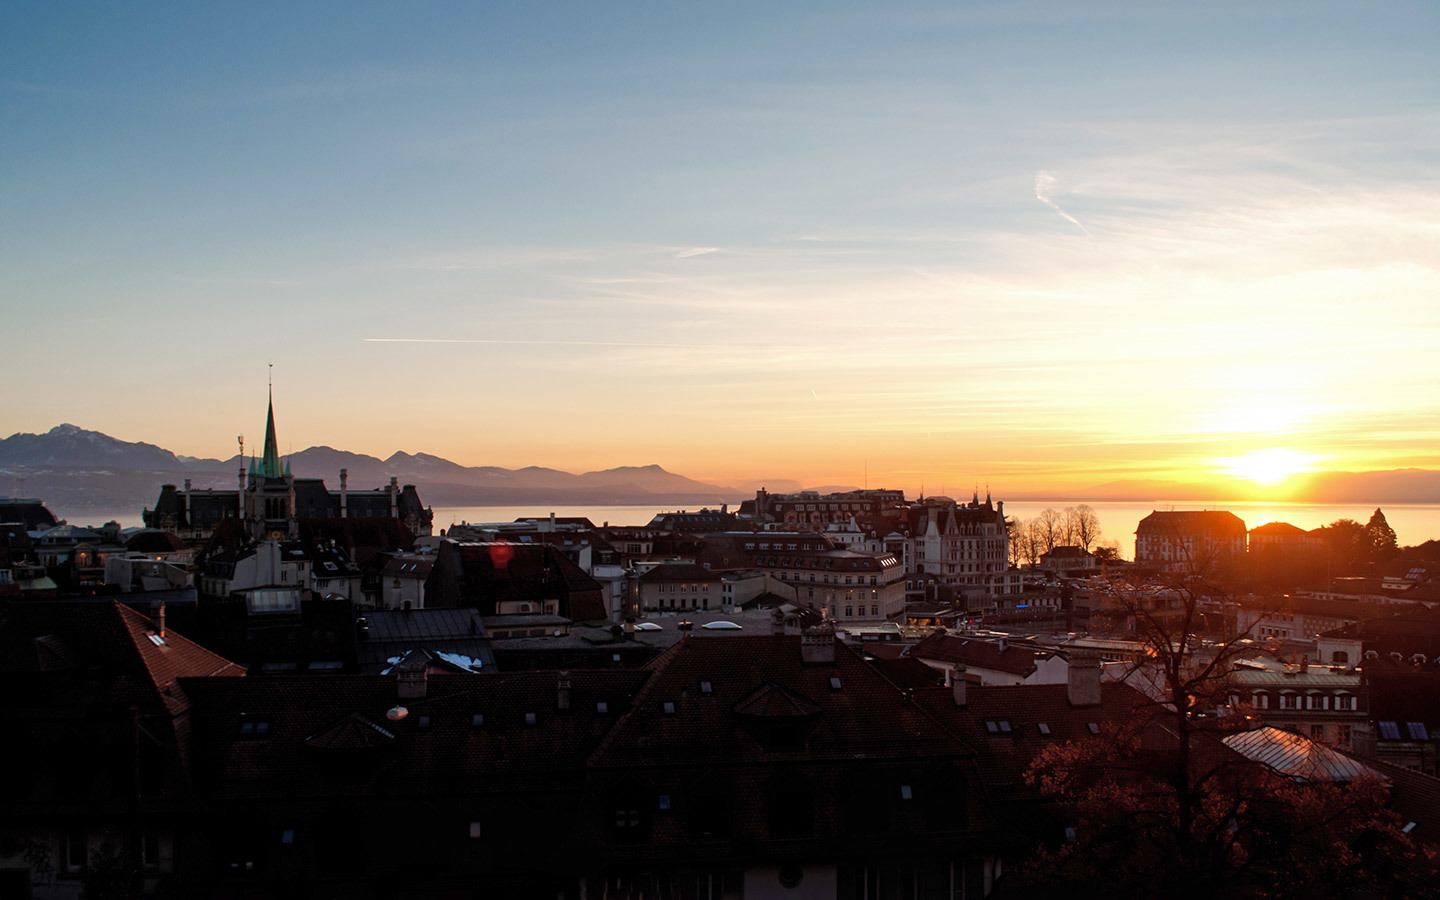 Sunset over Lausanne from outside the cathedral